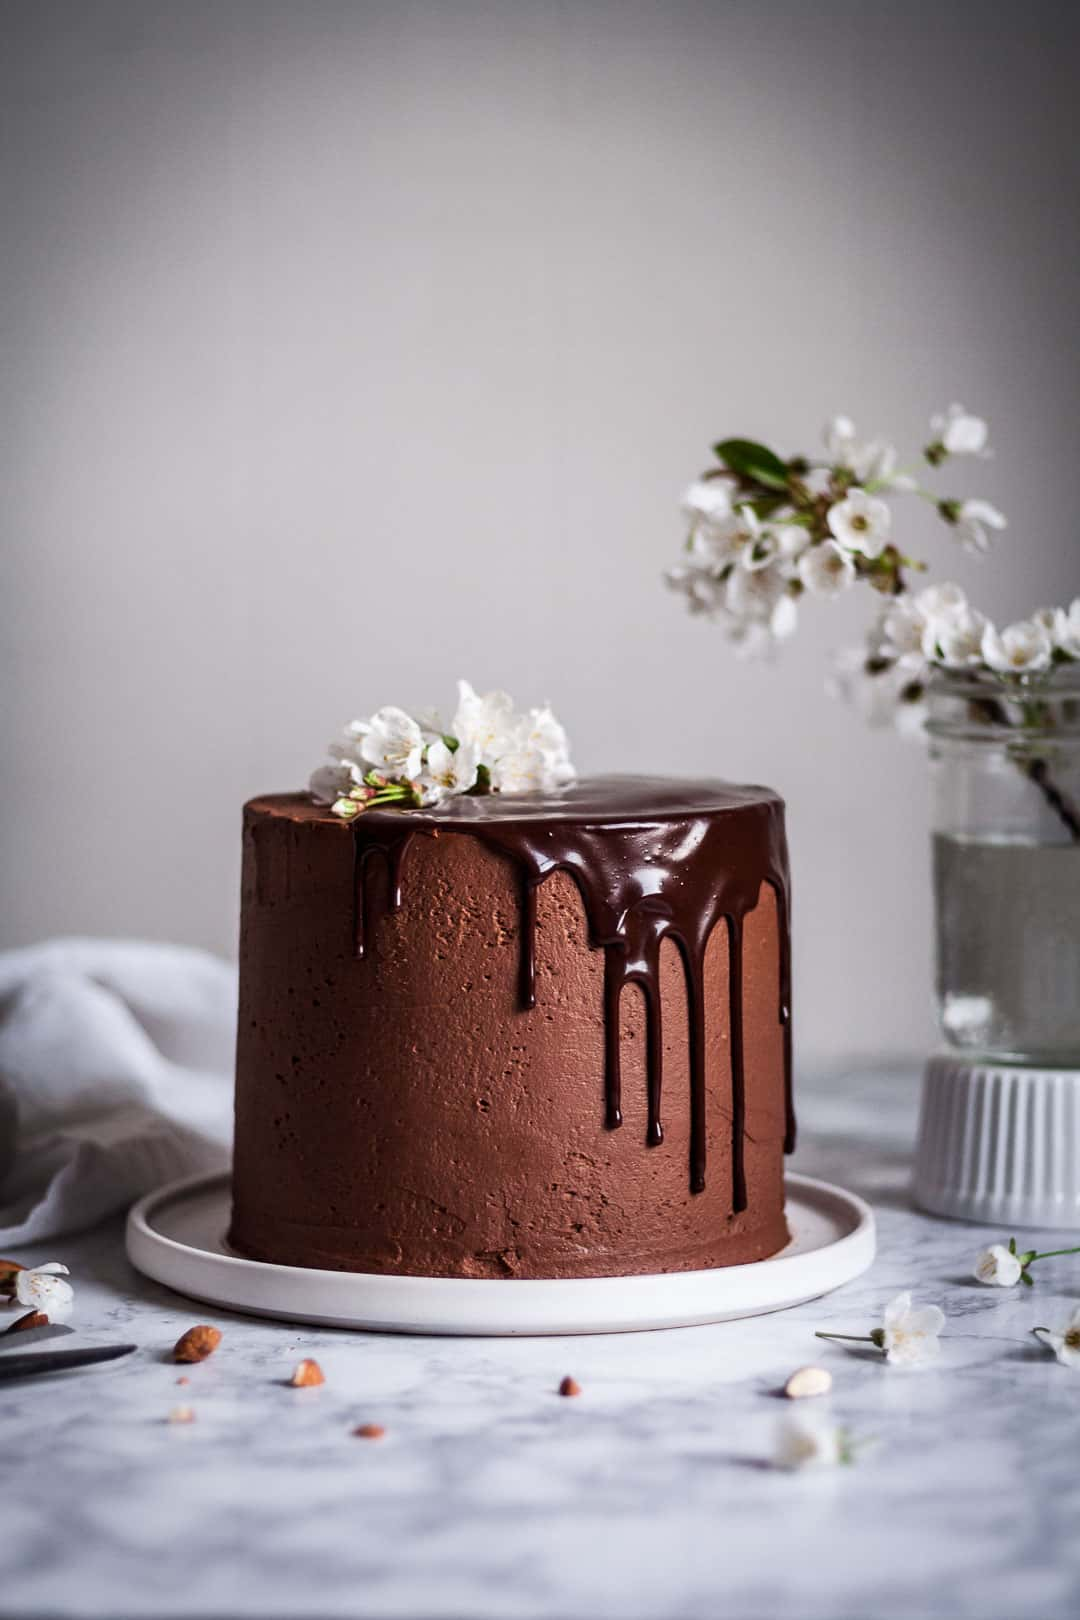 marzipan cake with chocolate buttercream and chocolate ganache drip on a white platter and marble surface, next to a vase of white cherry blossoms